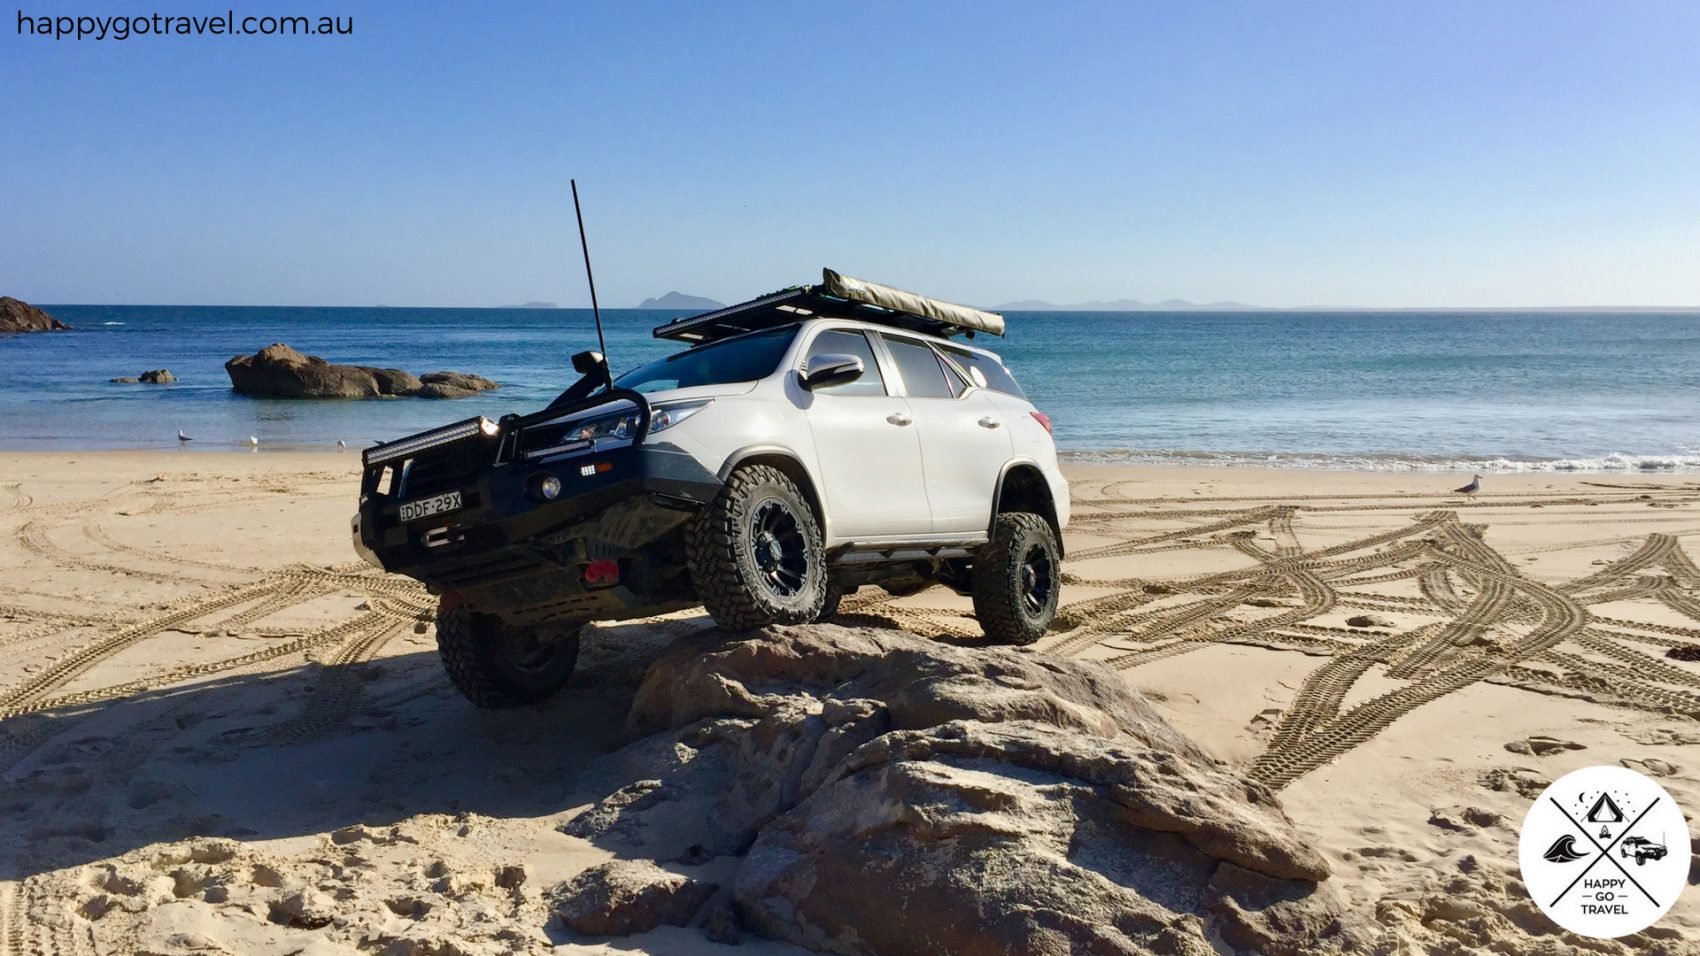 Toyota Fortuner Nolathane upper control arms. suspension flex on a rock at the beach